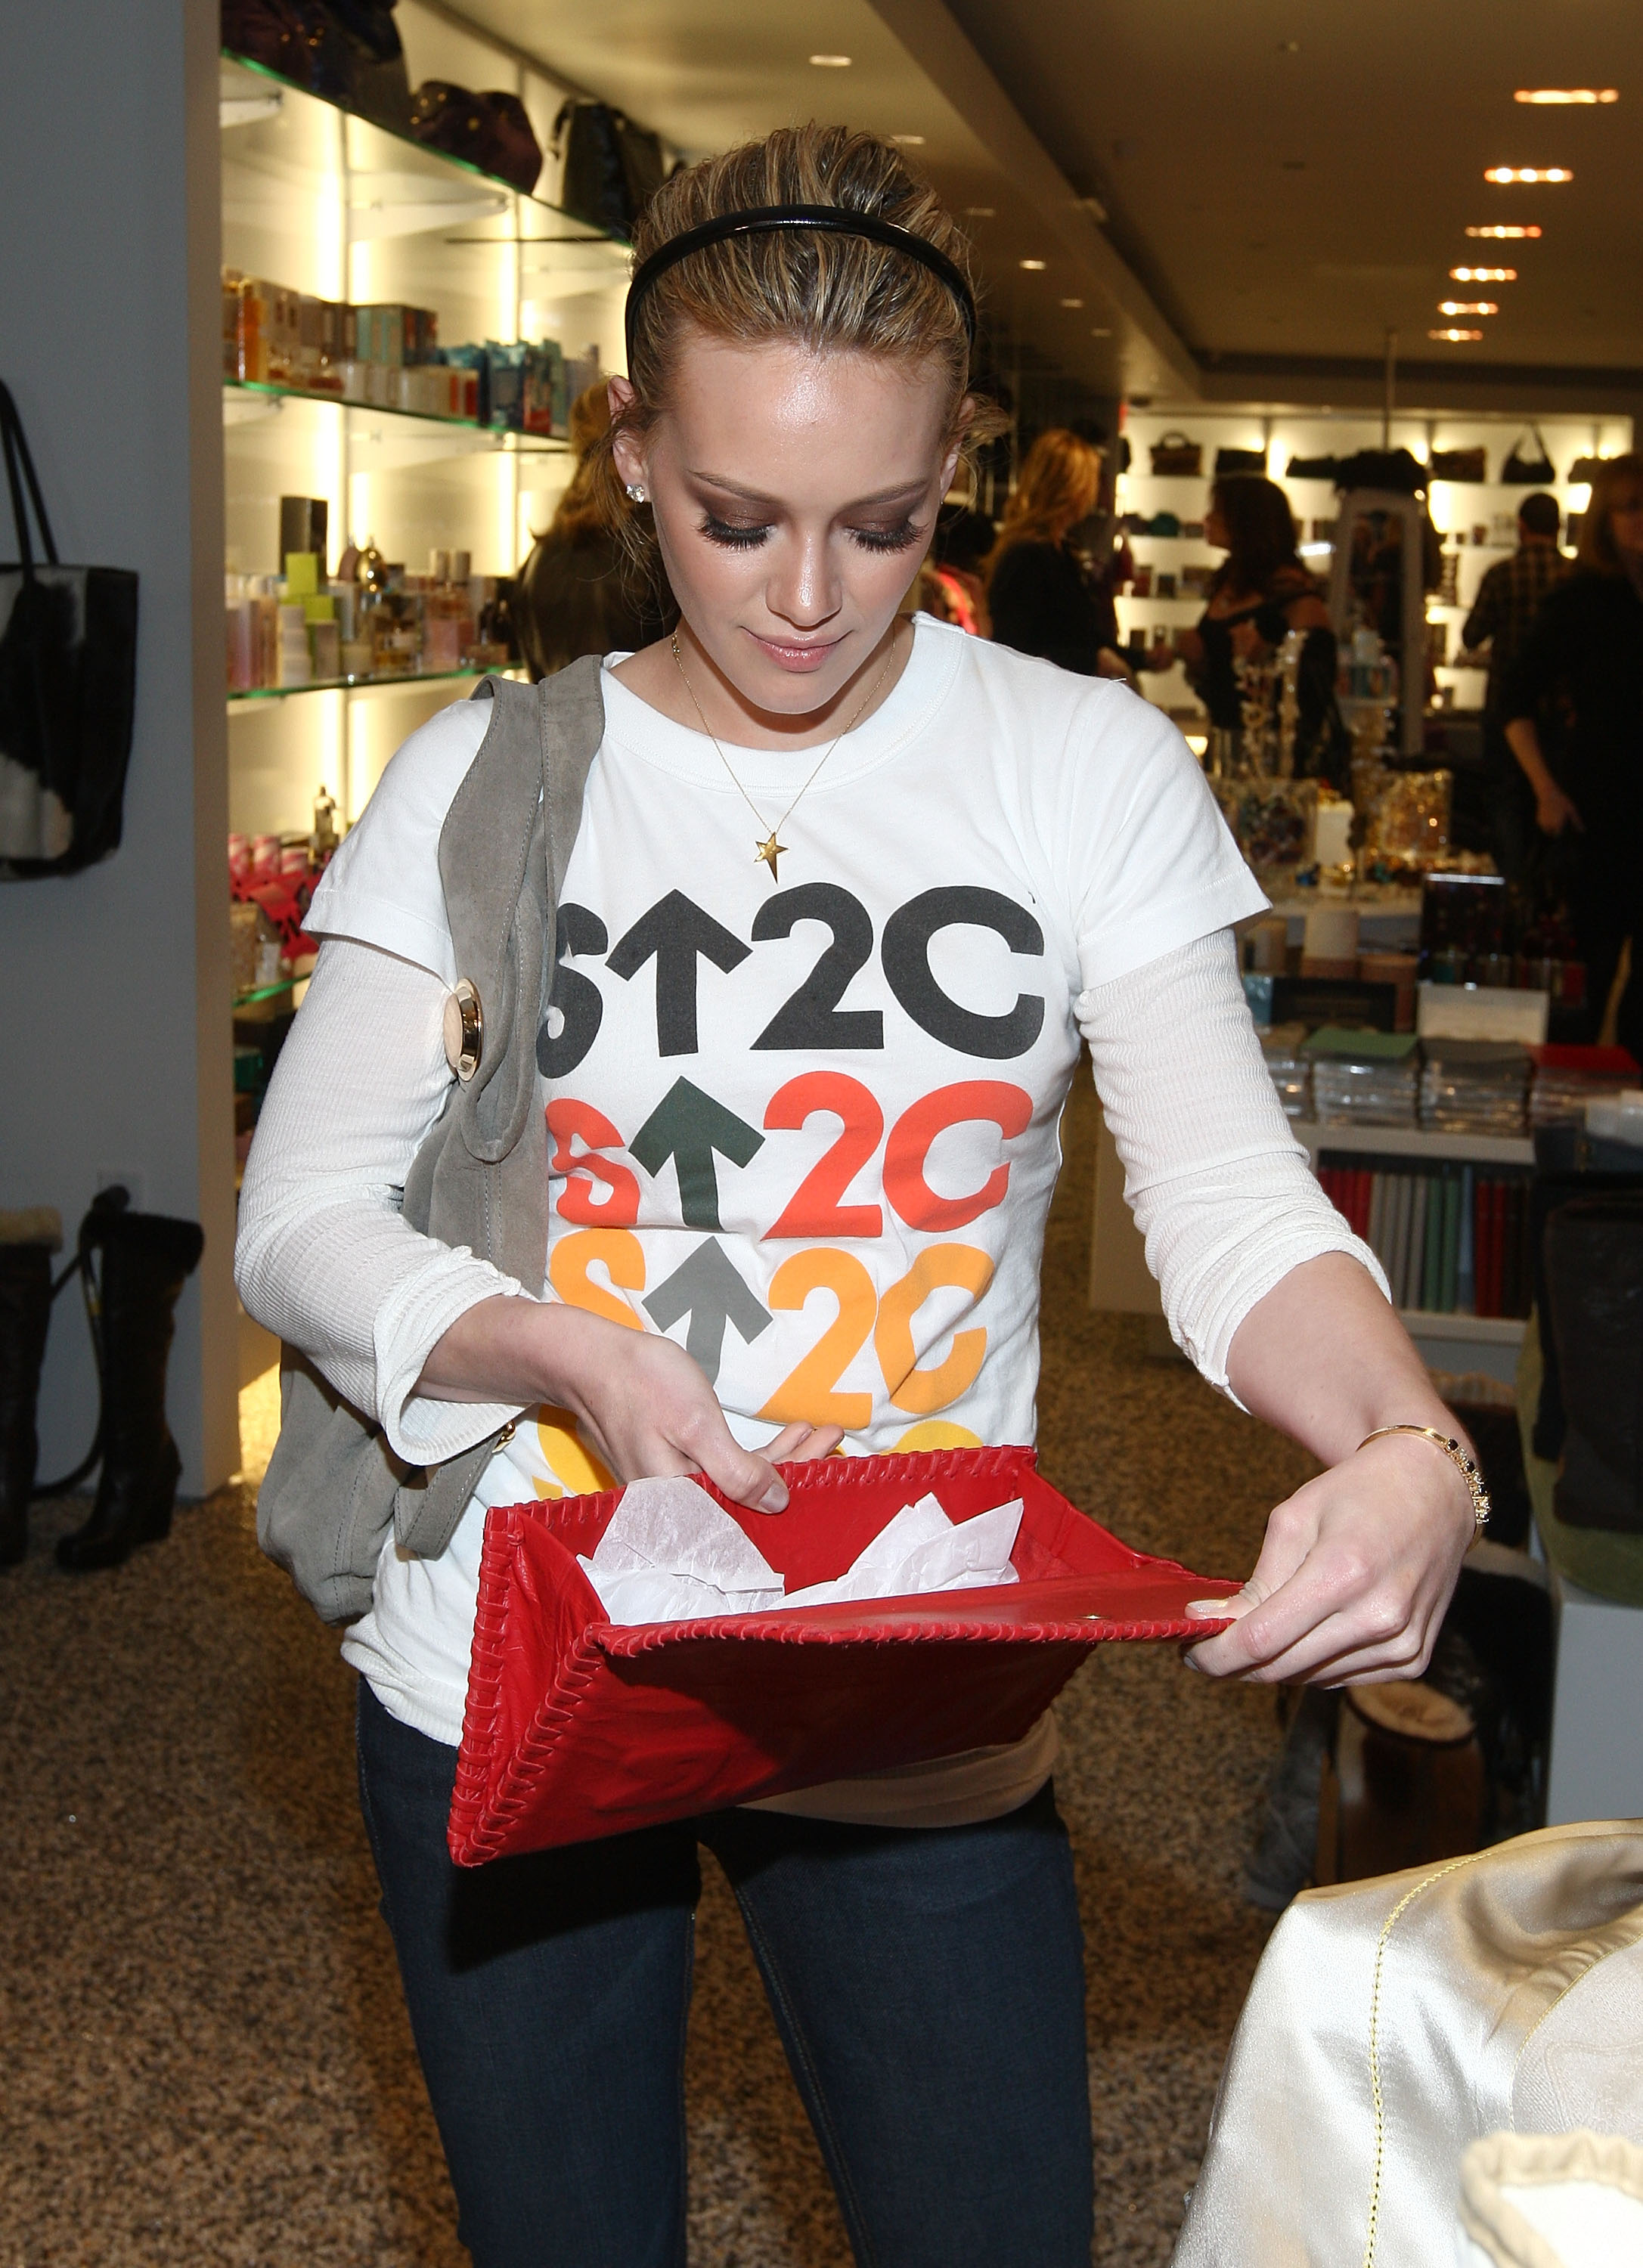 97327_Celebutopia-Mandy_Moore_and_Hilary_Duff-SU2C_merchandise_collection_launch-12_122_33lo.jpg